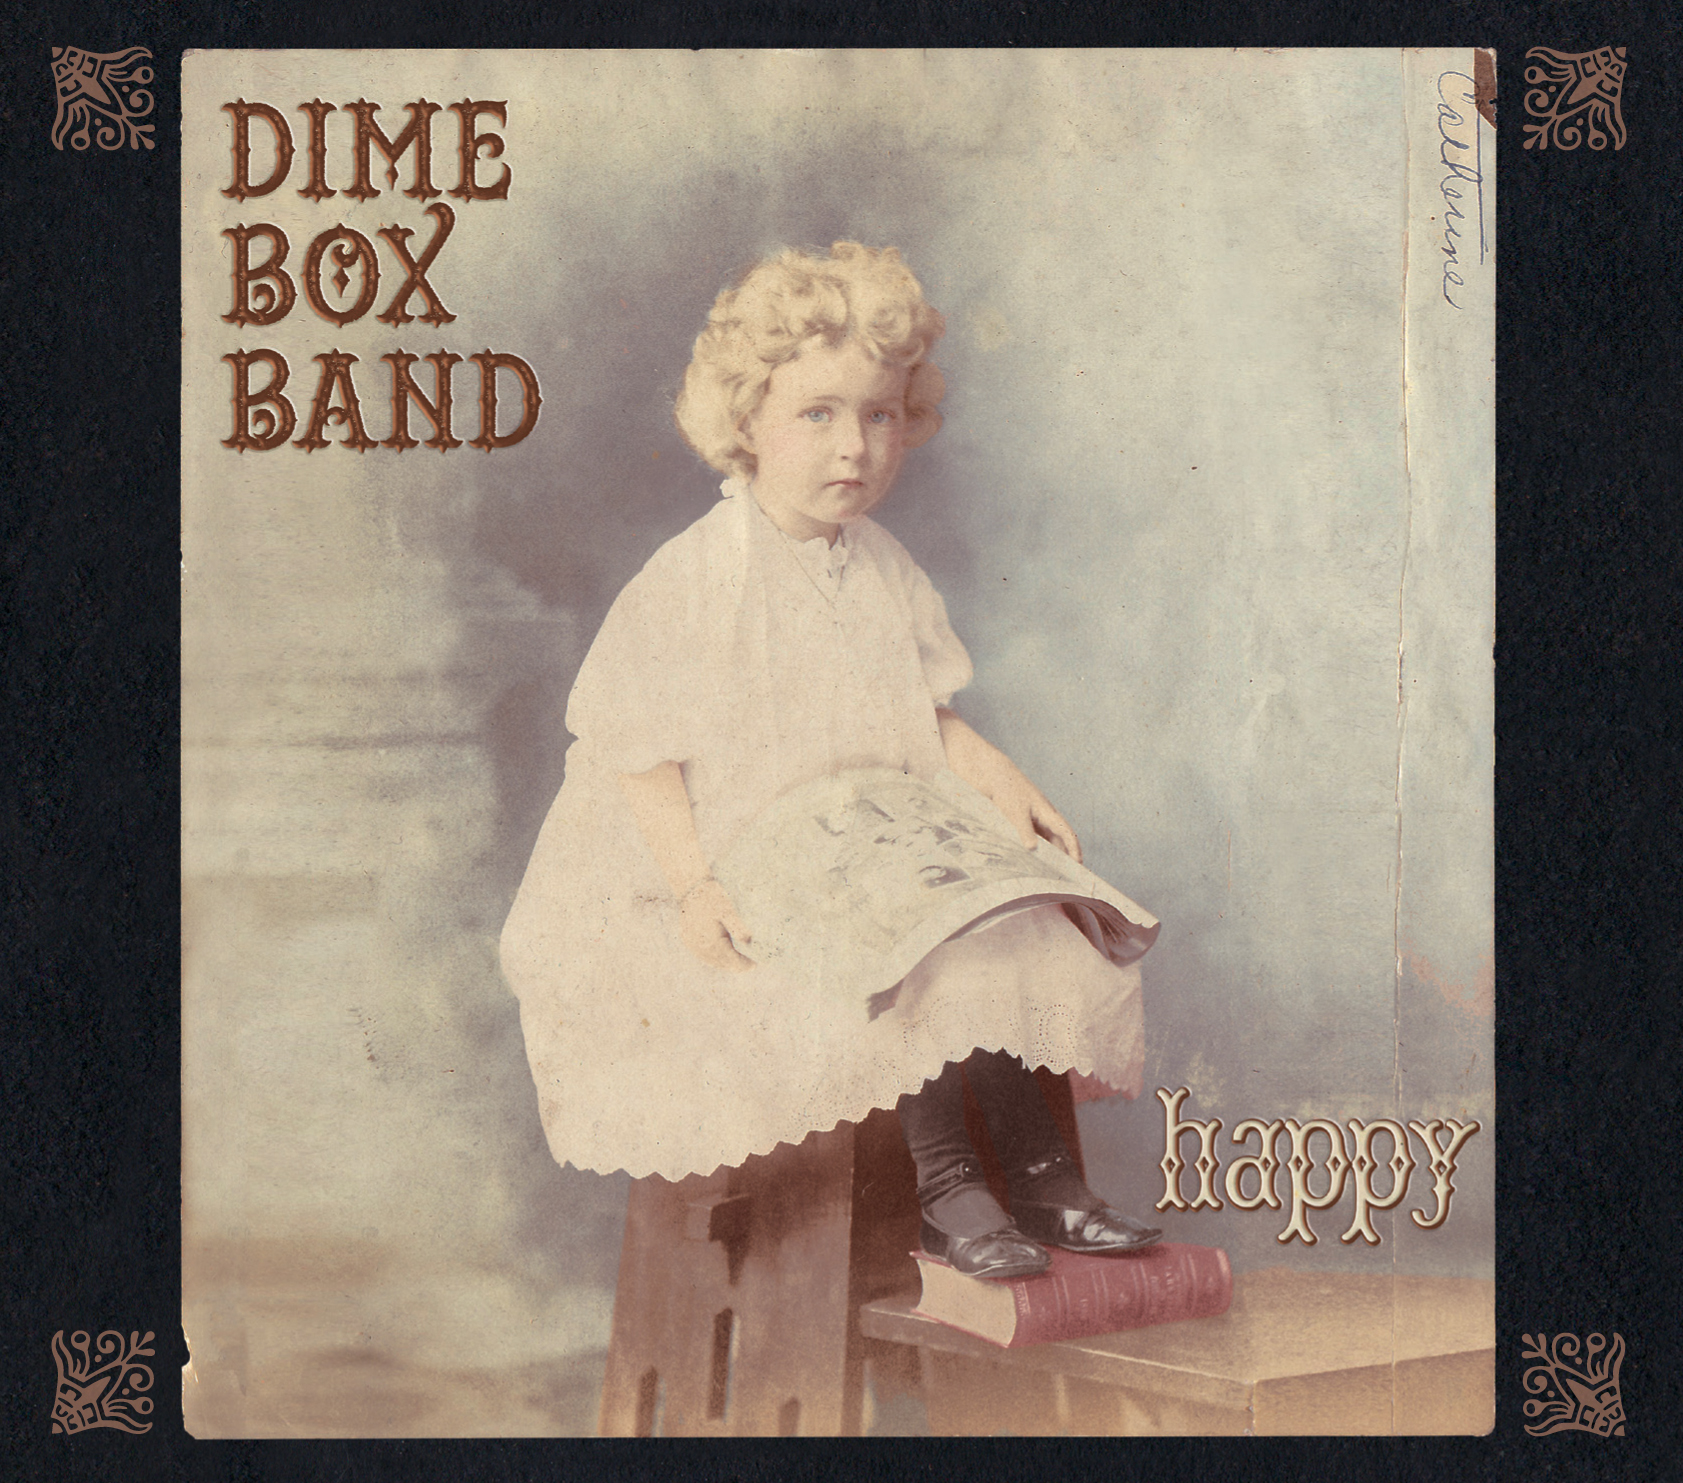 Wednesday Week's Kristi Callan Is Back With Dime Box Band's Happy New album on October 1st